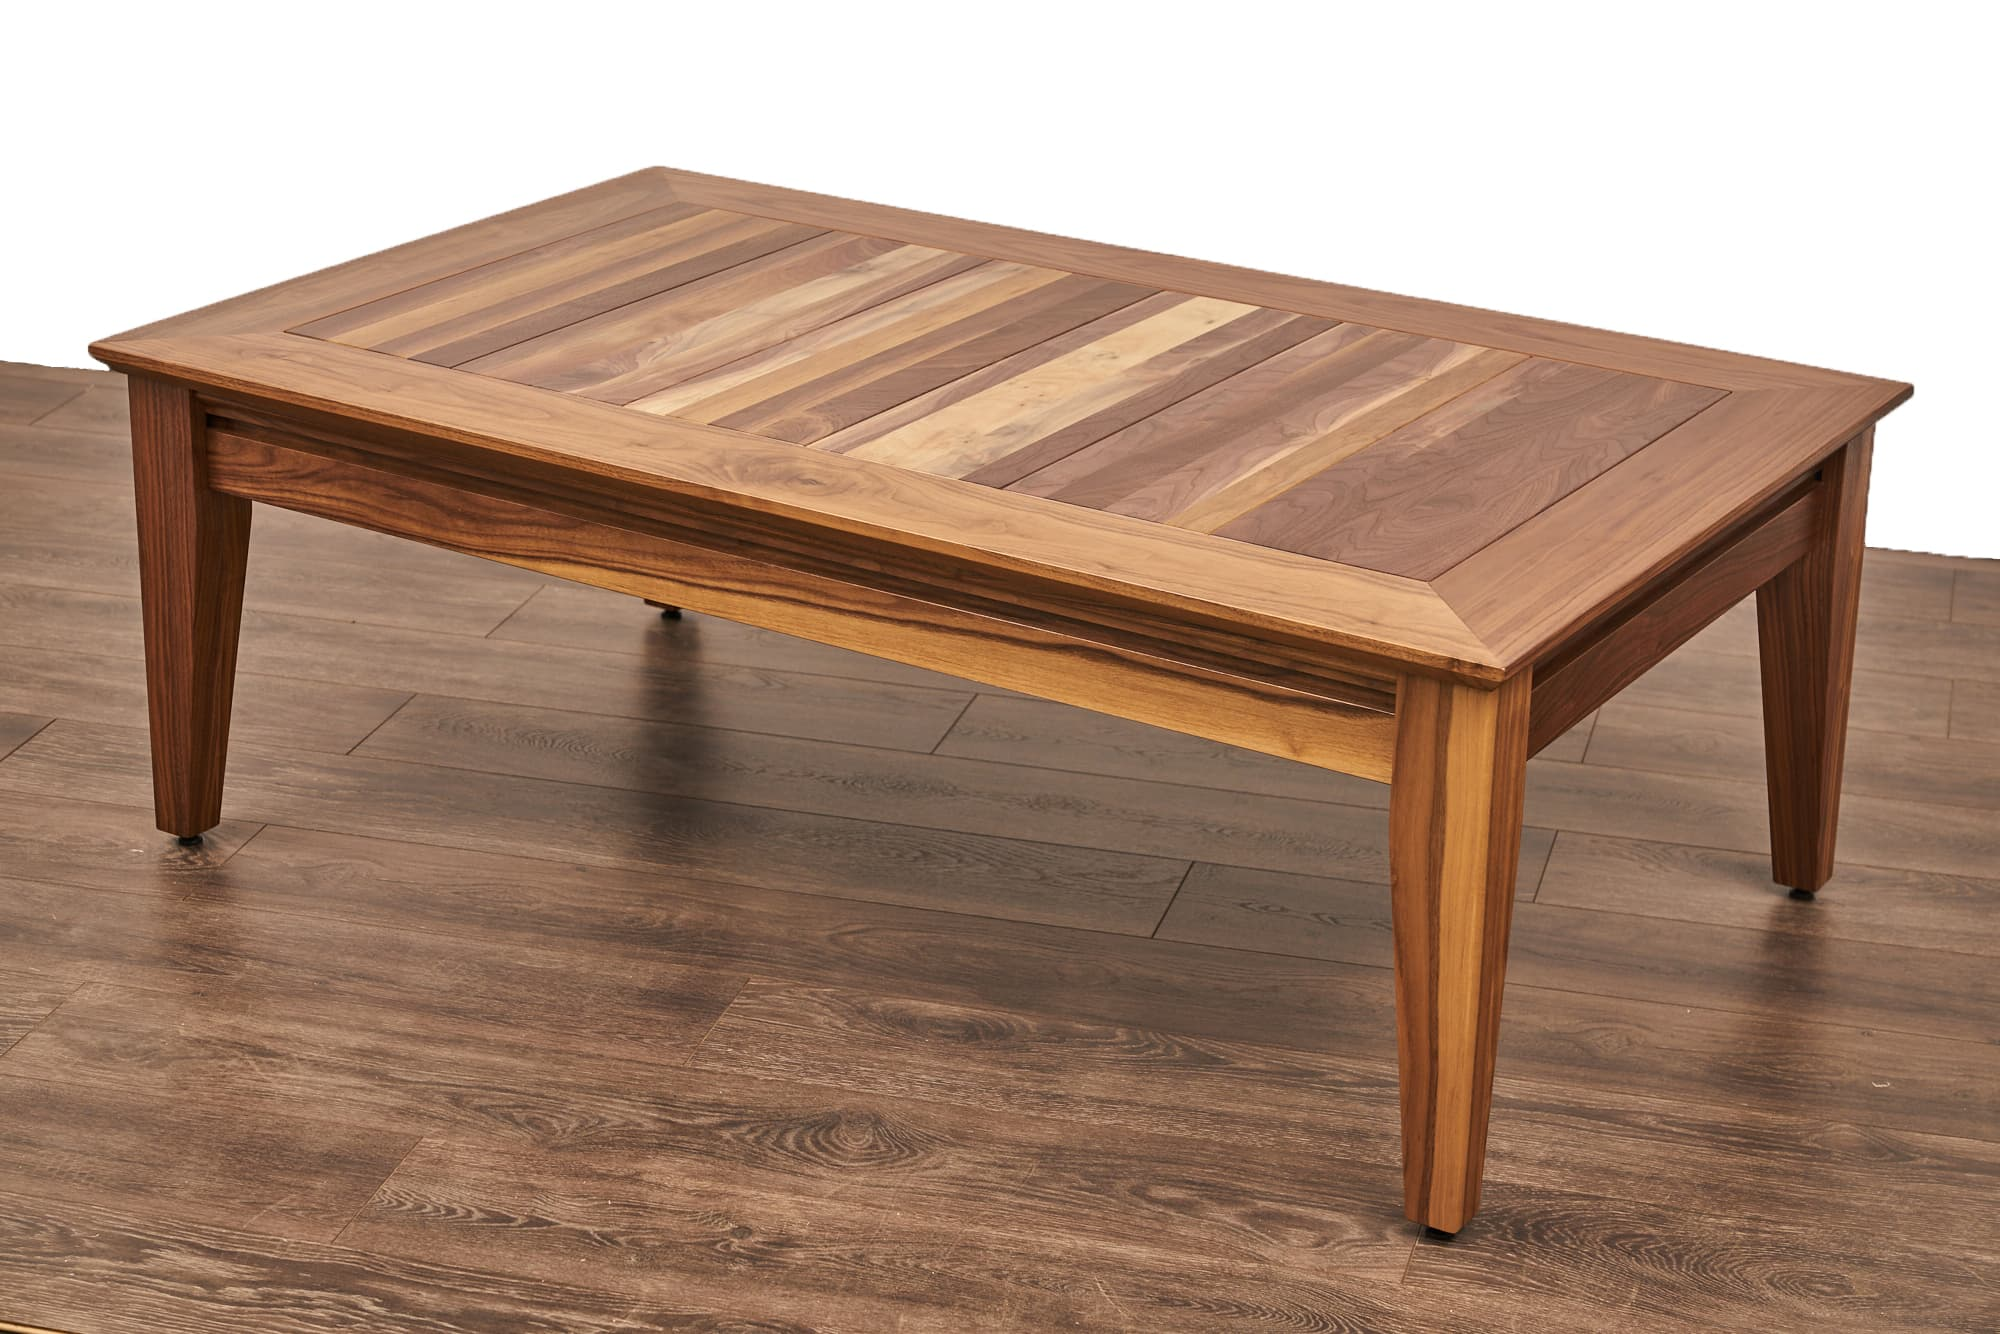 The Earl board gaming table in Rustic Hickory